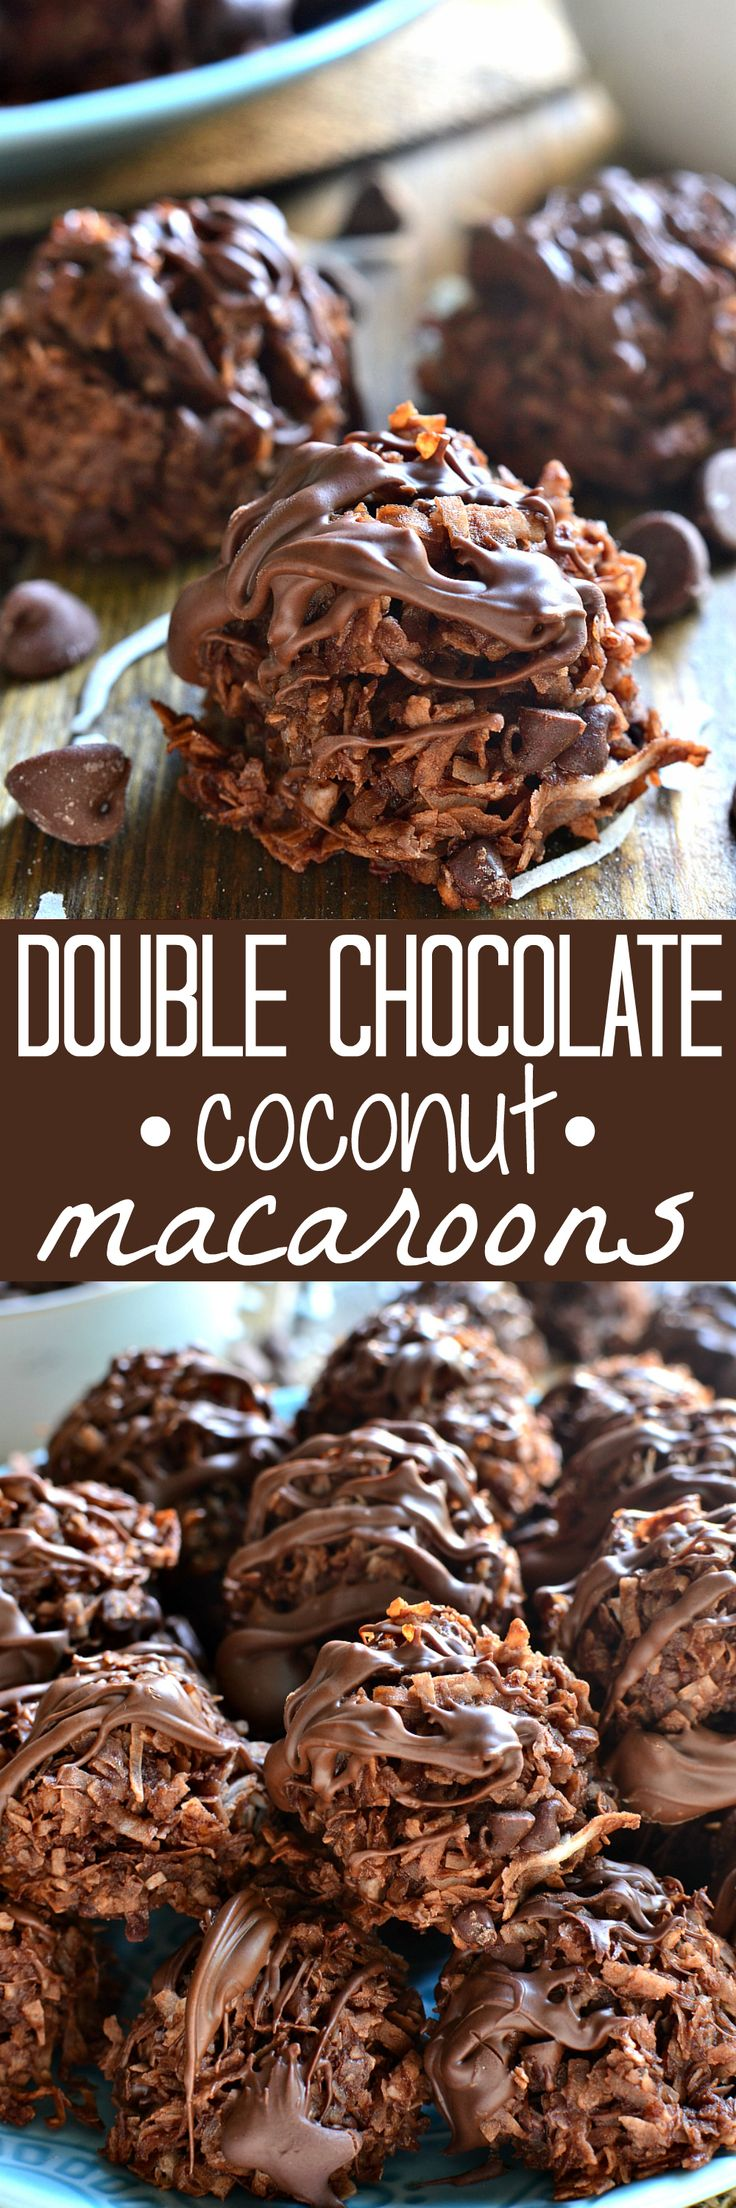 These Double Chocolate Coconut Macaroons are loaded with rich chocolatey flavor – the perfect twist on a classic! @TruviaBrand #truvia #ad